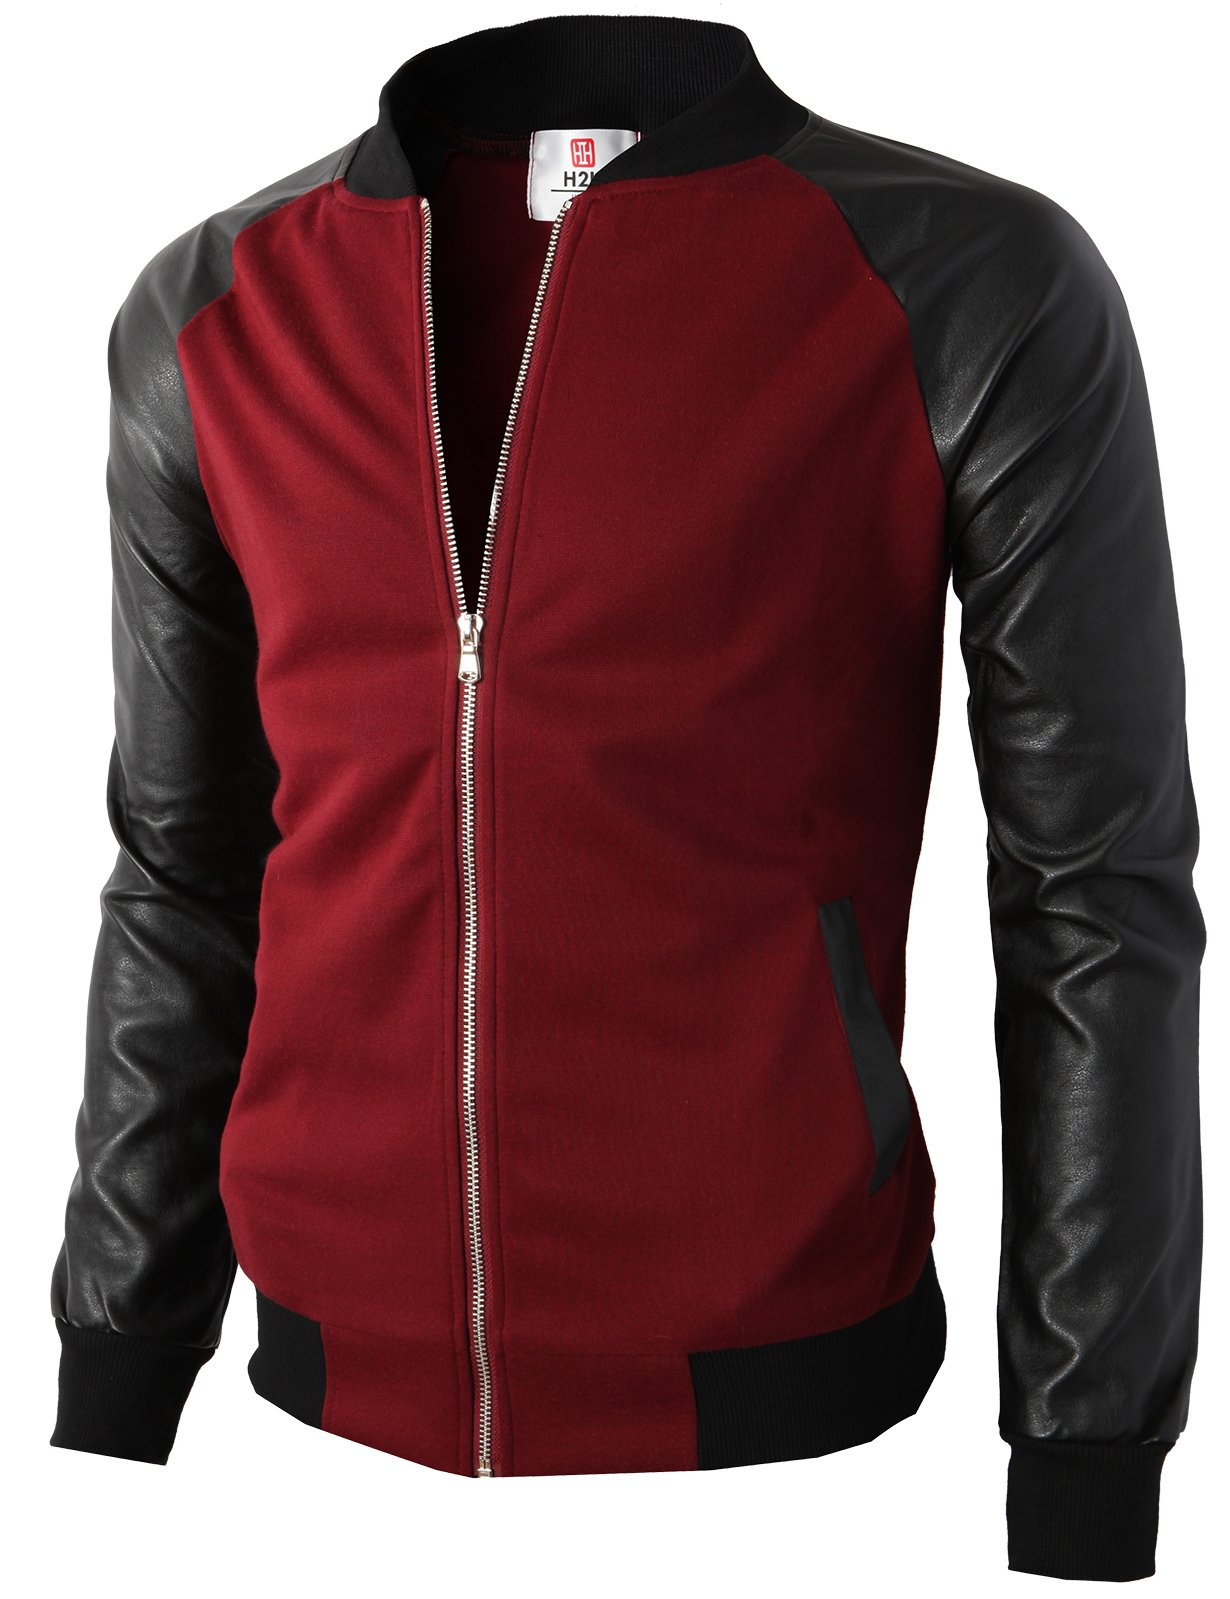 H2H Mens Casual Premium Quilted Lightweight Zip up Varsity Jacket Wine US XL/Asia 2XL (KMOJA0126) by H2H